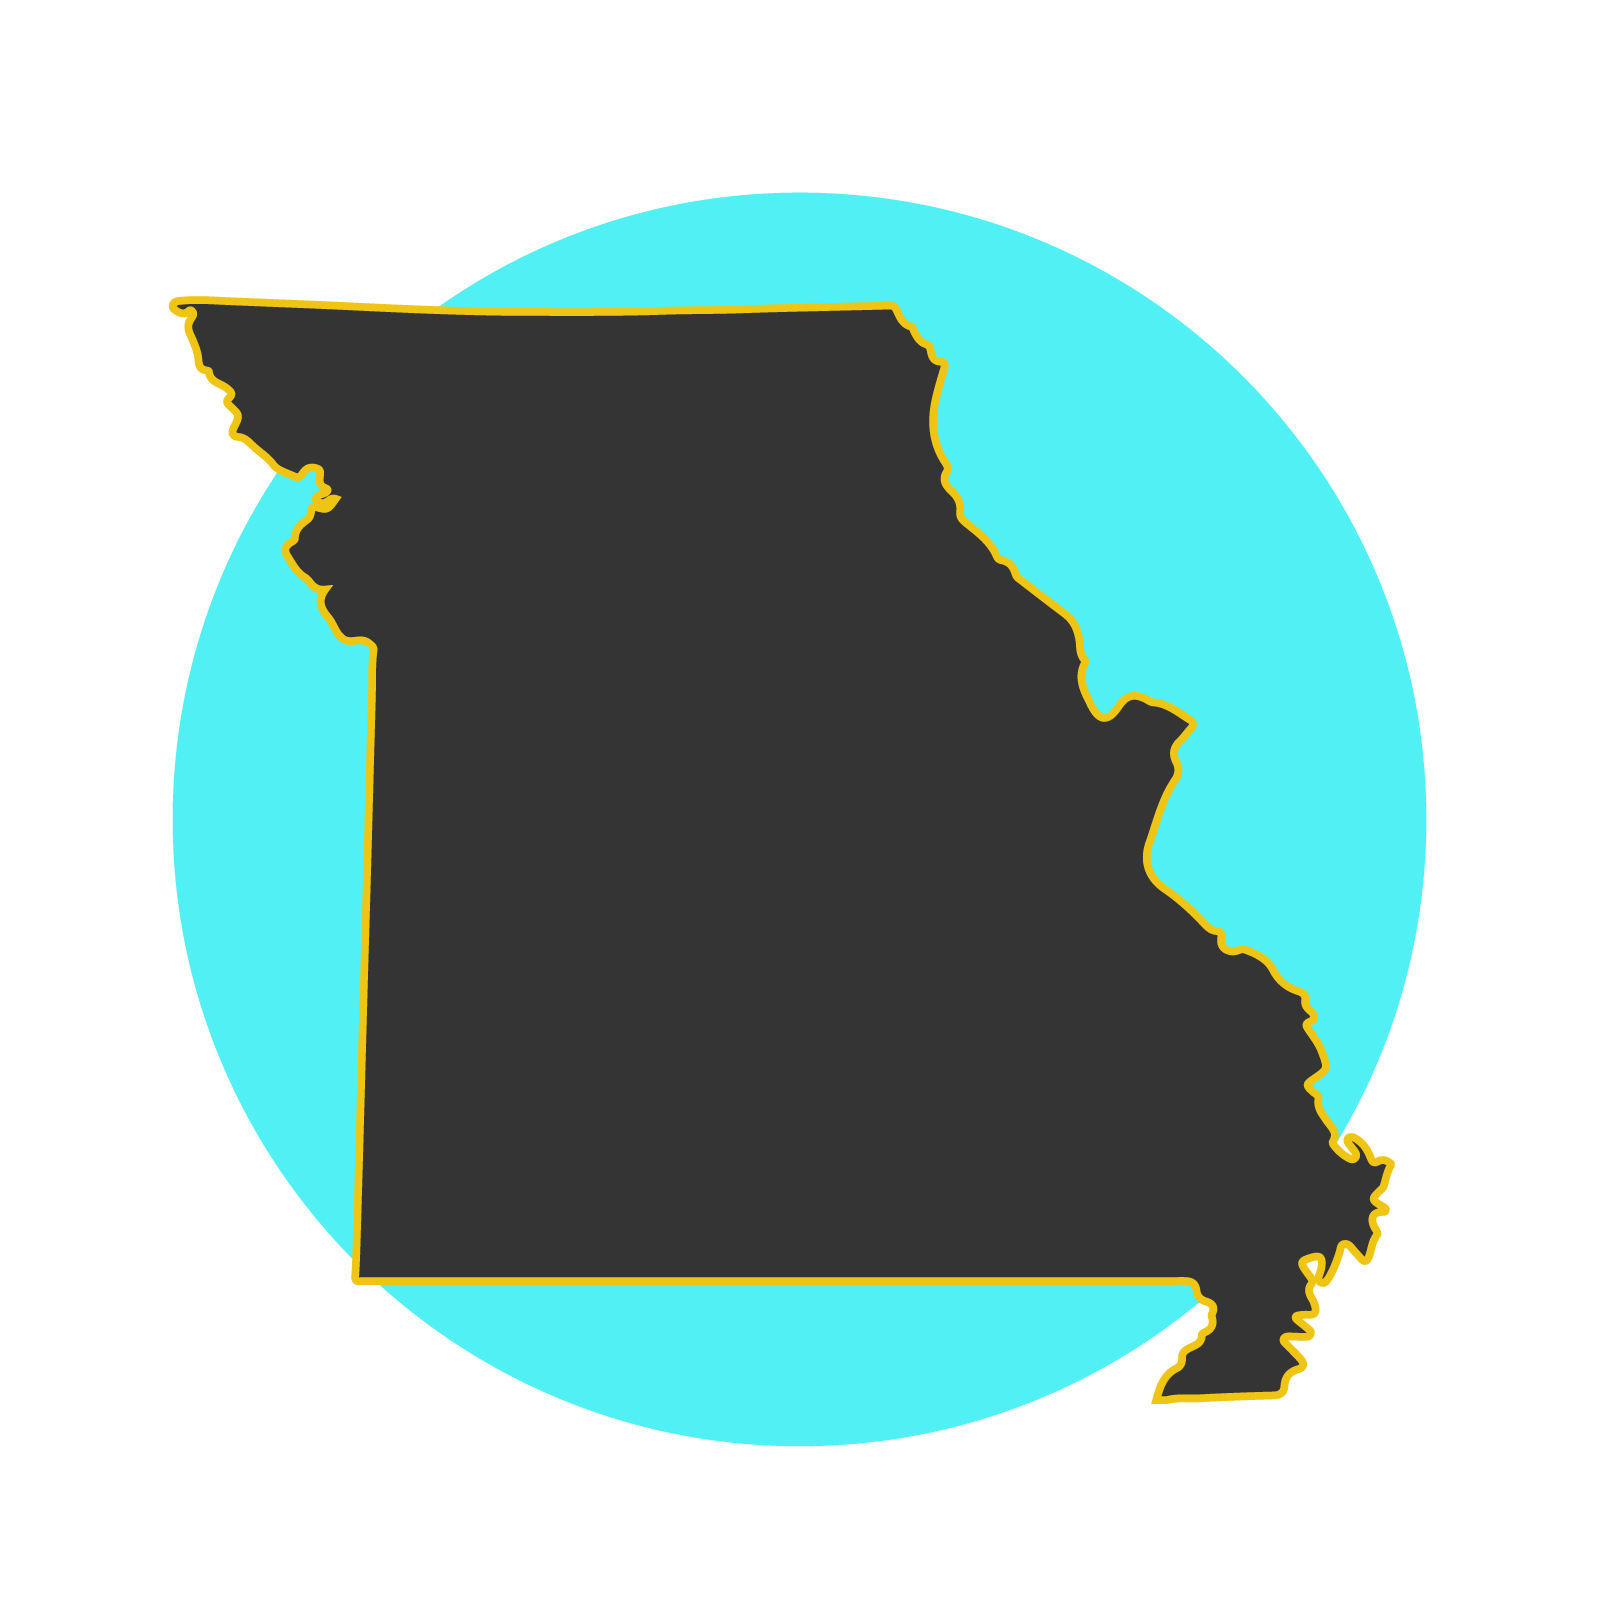 Missouri Digital Fundraising state